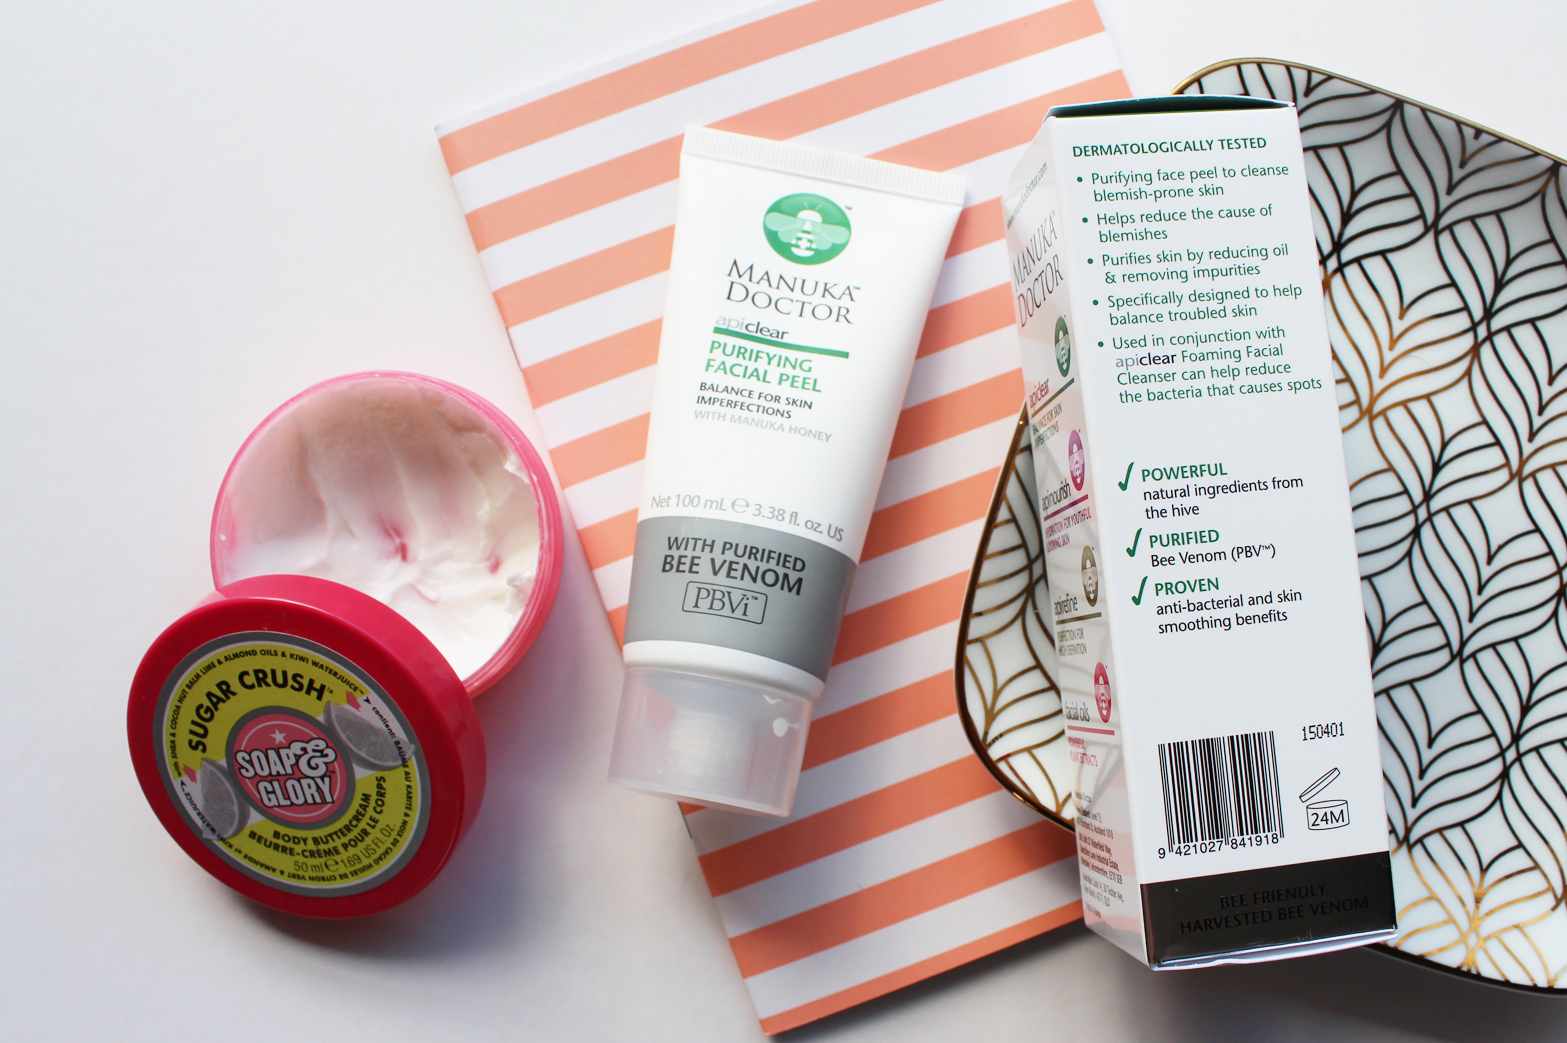 MOST LOVED | August '15 - Soap & Glory, Manuka Dr, Jeffree Star Cosmetics, Blinc, Maybelline, Jordana - CassandraMyee